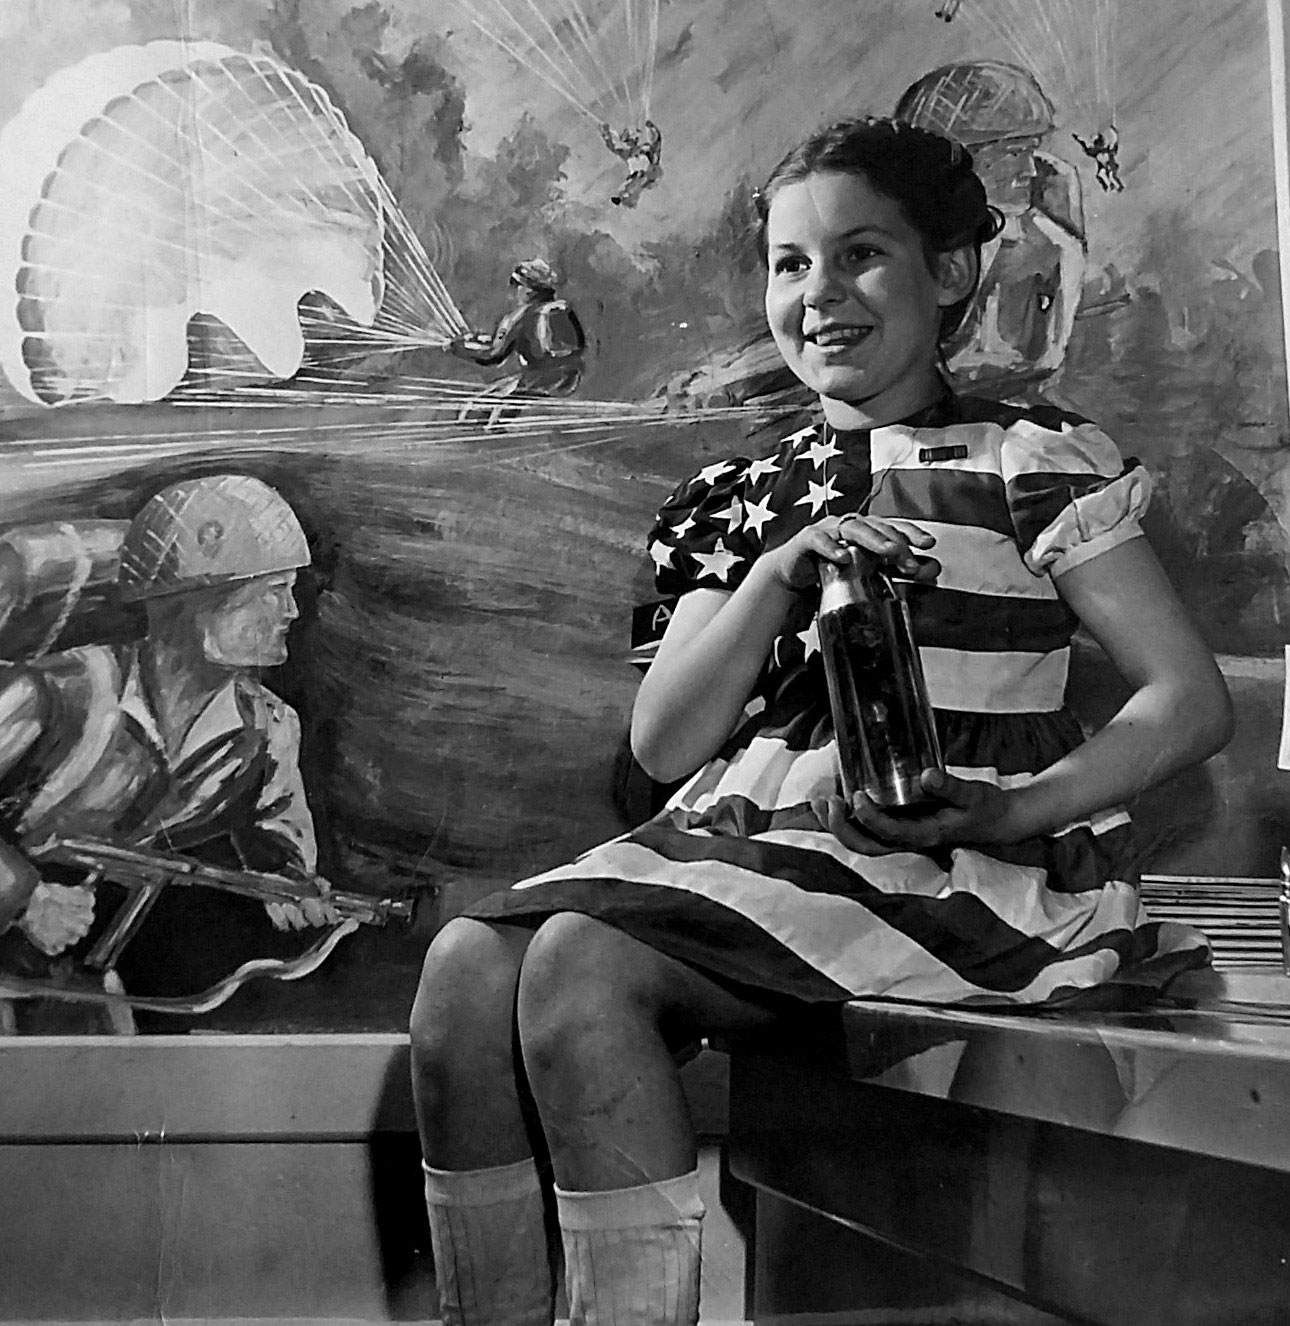 A black and white photo of a girl wearing an American flag dress